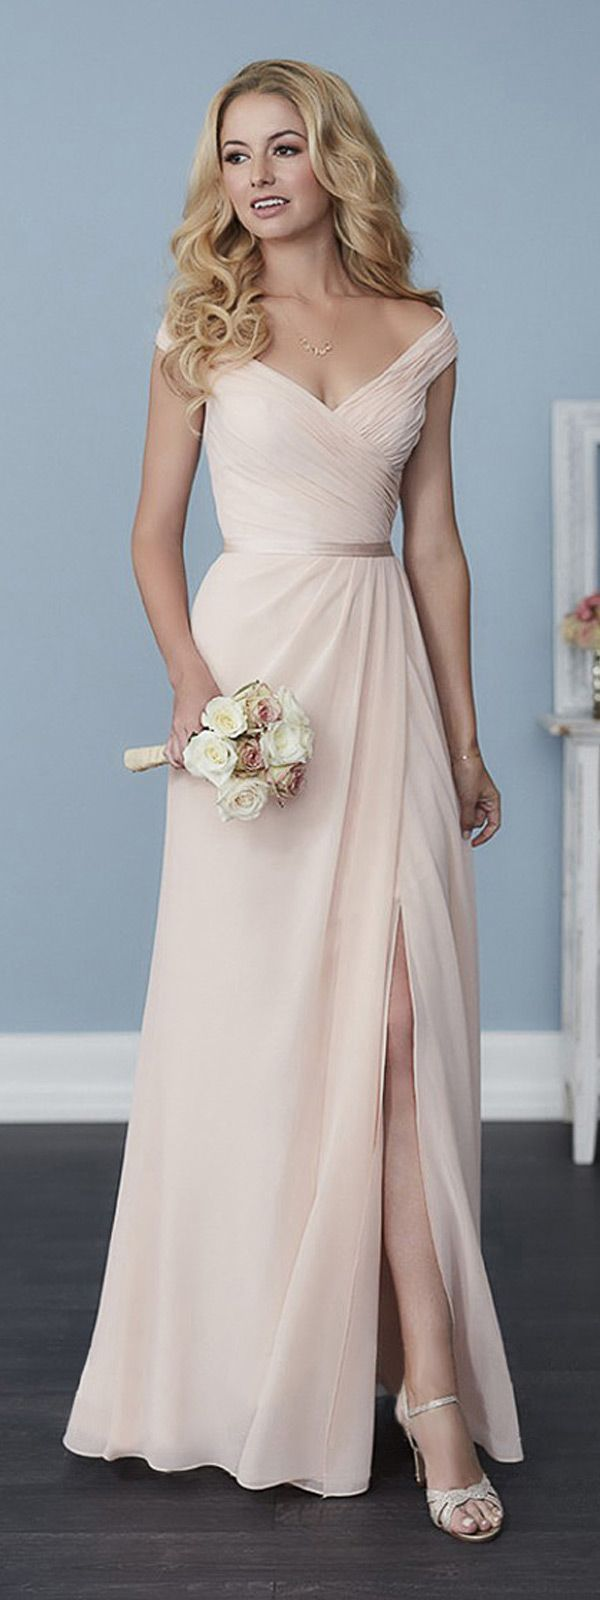 Elegant Chiffon Off-the-shoulder Neckline A-line Bridesmaid Dresses With Belt & Slit